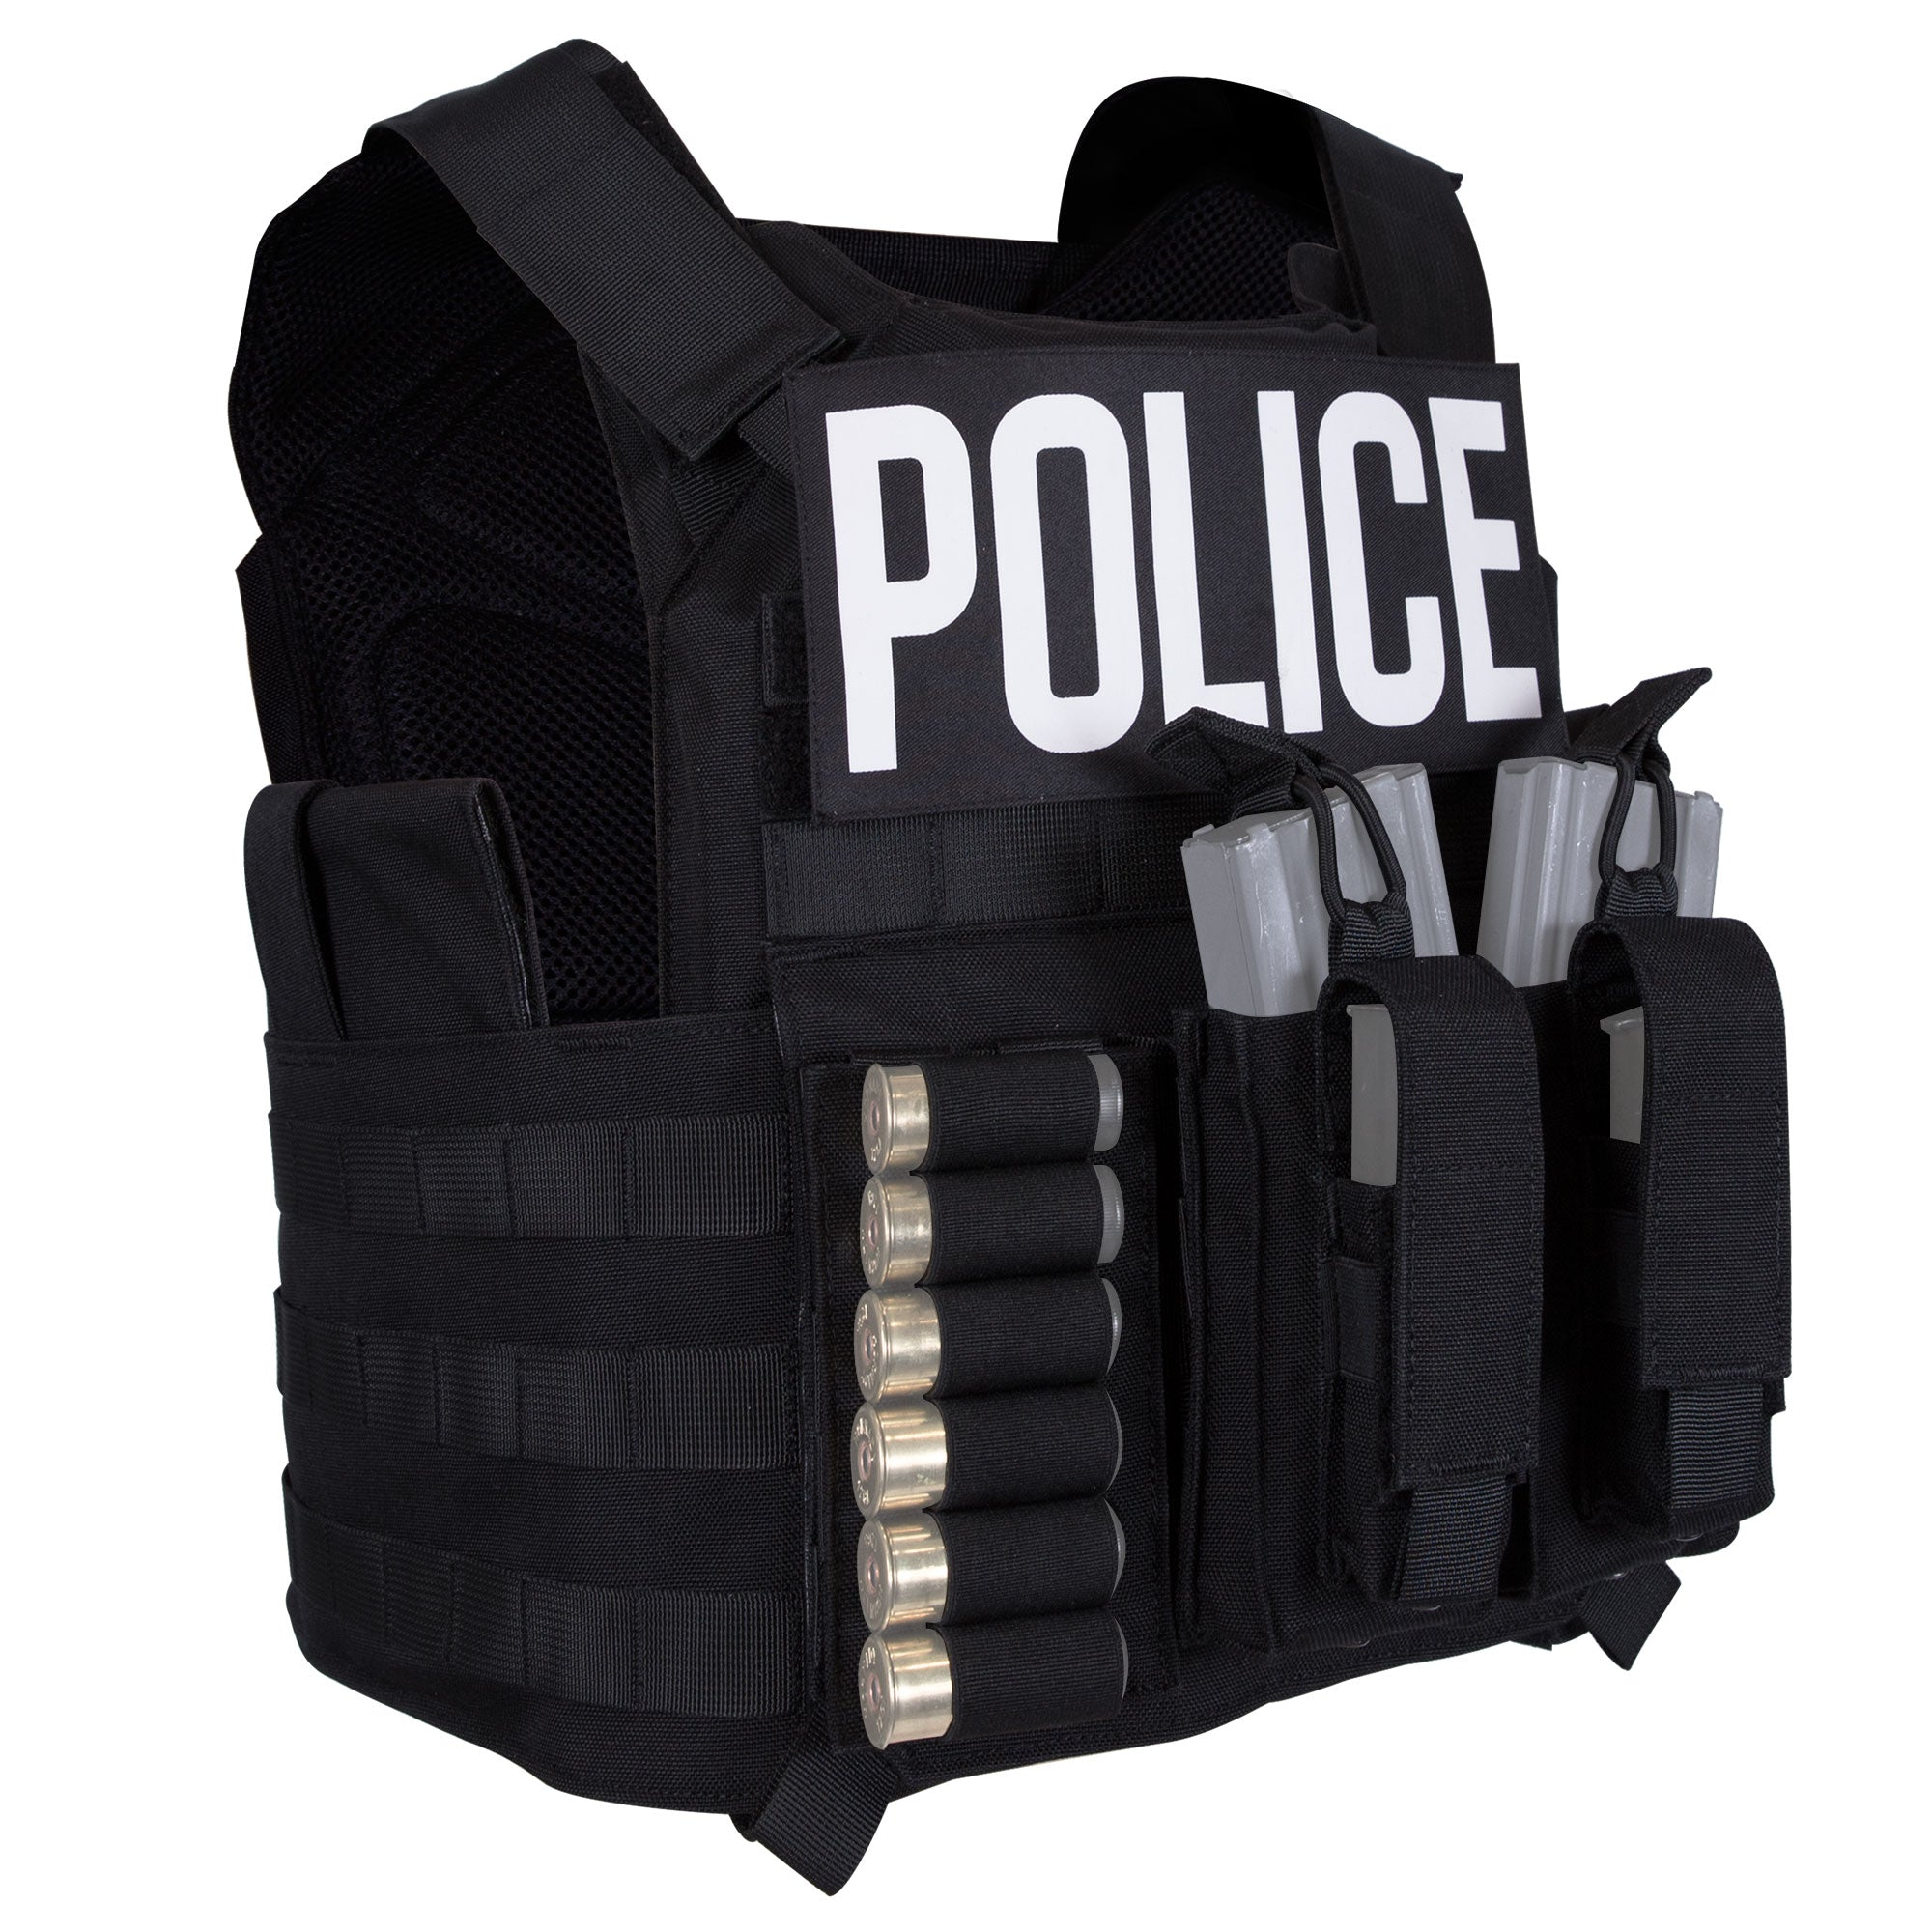 s.w.a.t. plate carrier - Front